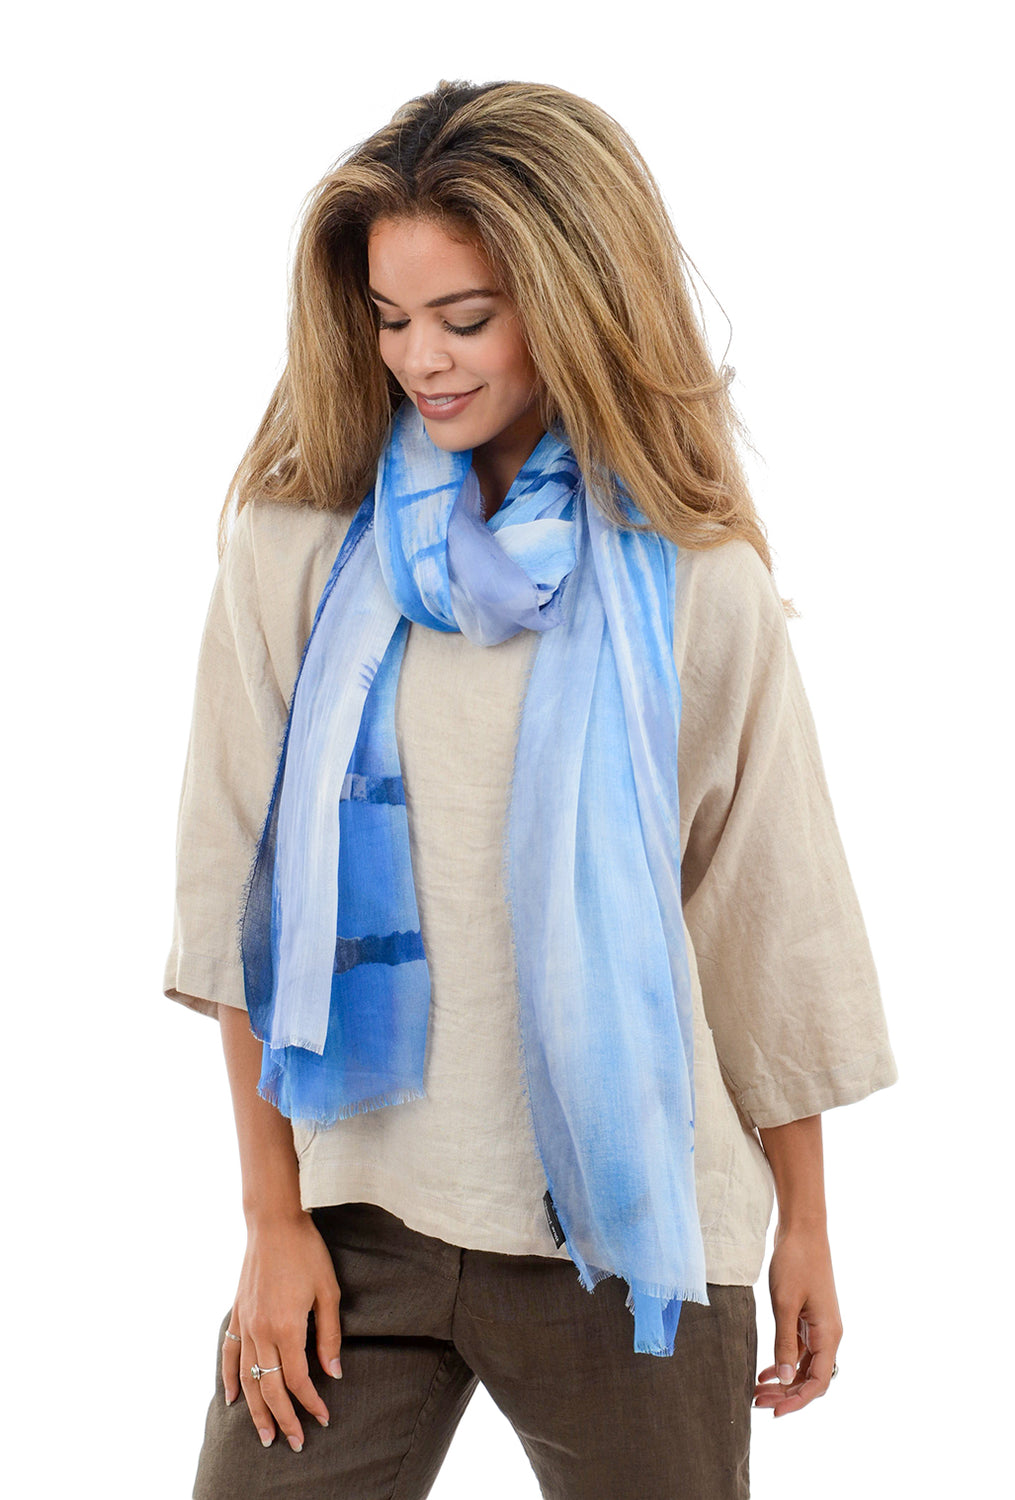 Blue Pacific Travel Scarf, Coconut Beach Blue